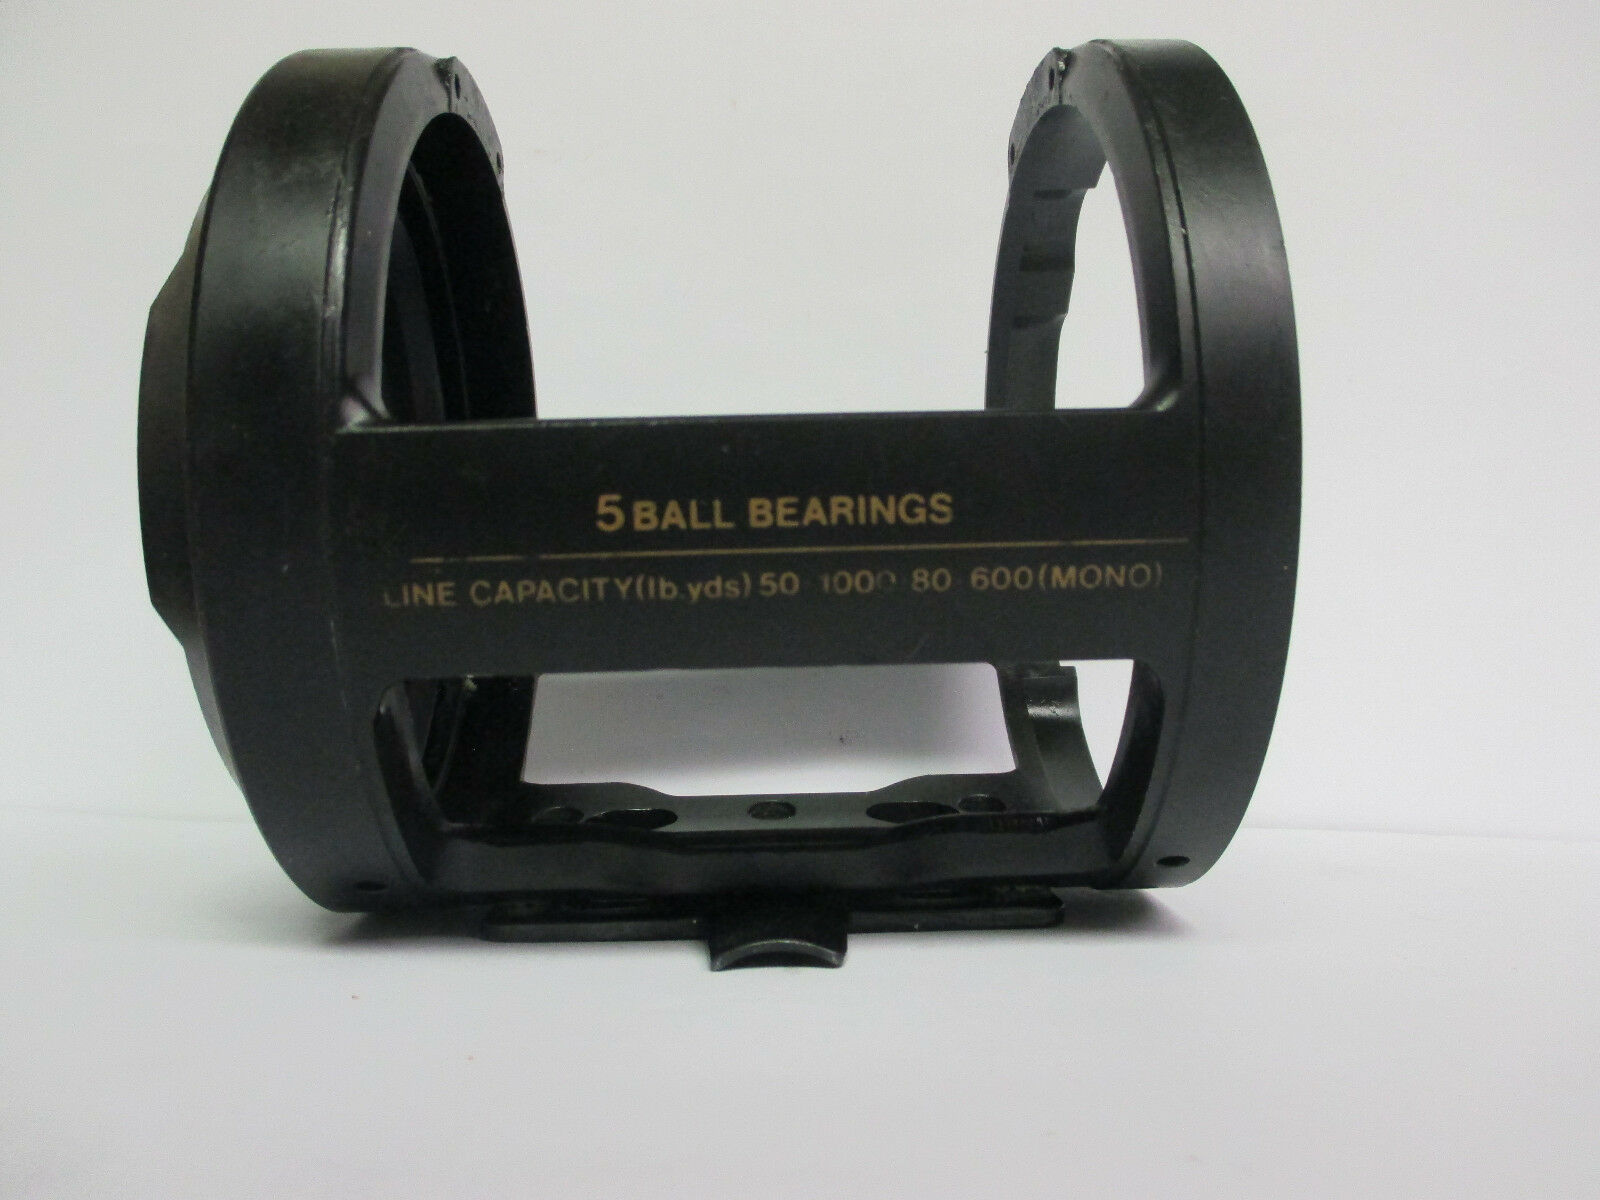 USED SHIMANO REEL PART Beastmaster 50 Frame 80 2 Speed - Frame 50 a4339a